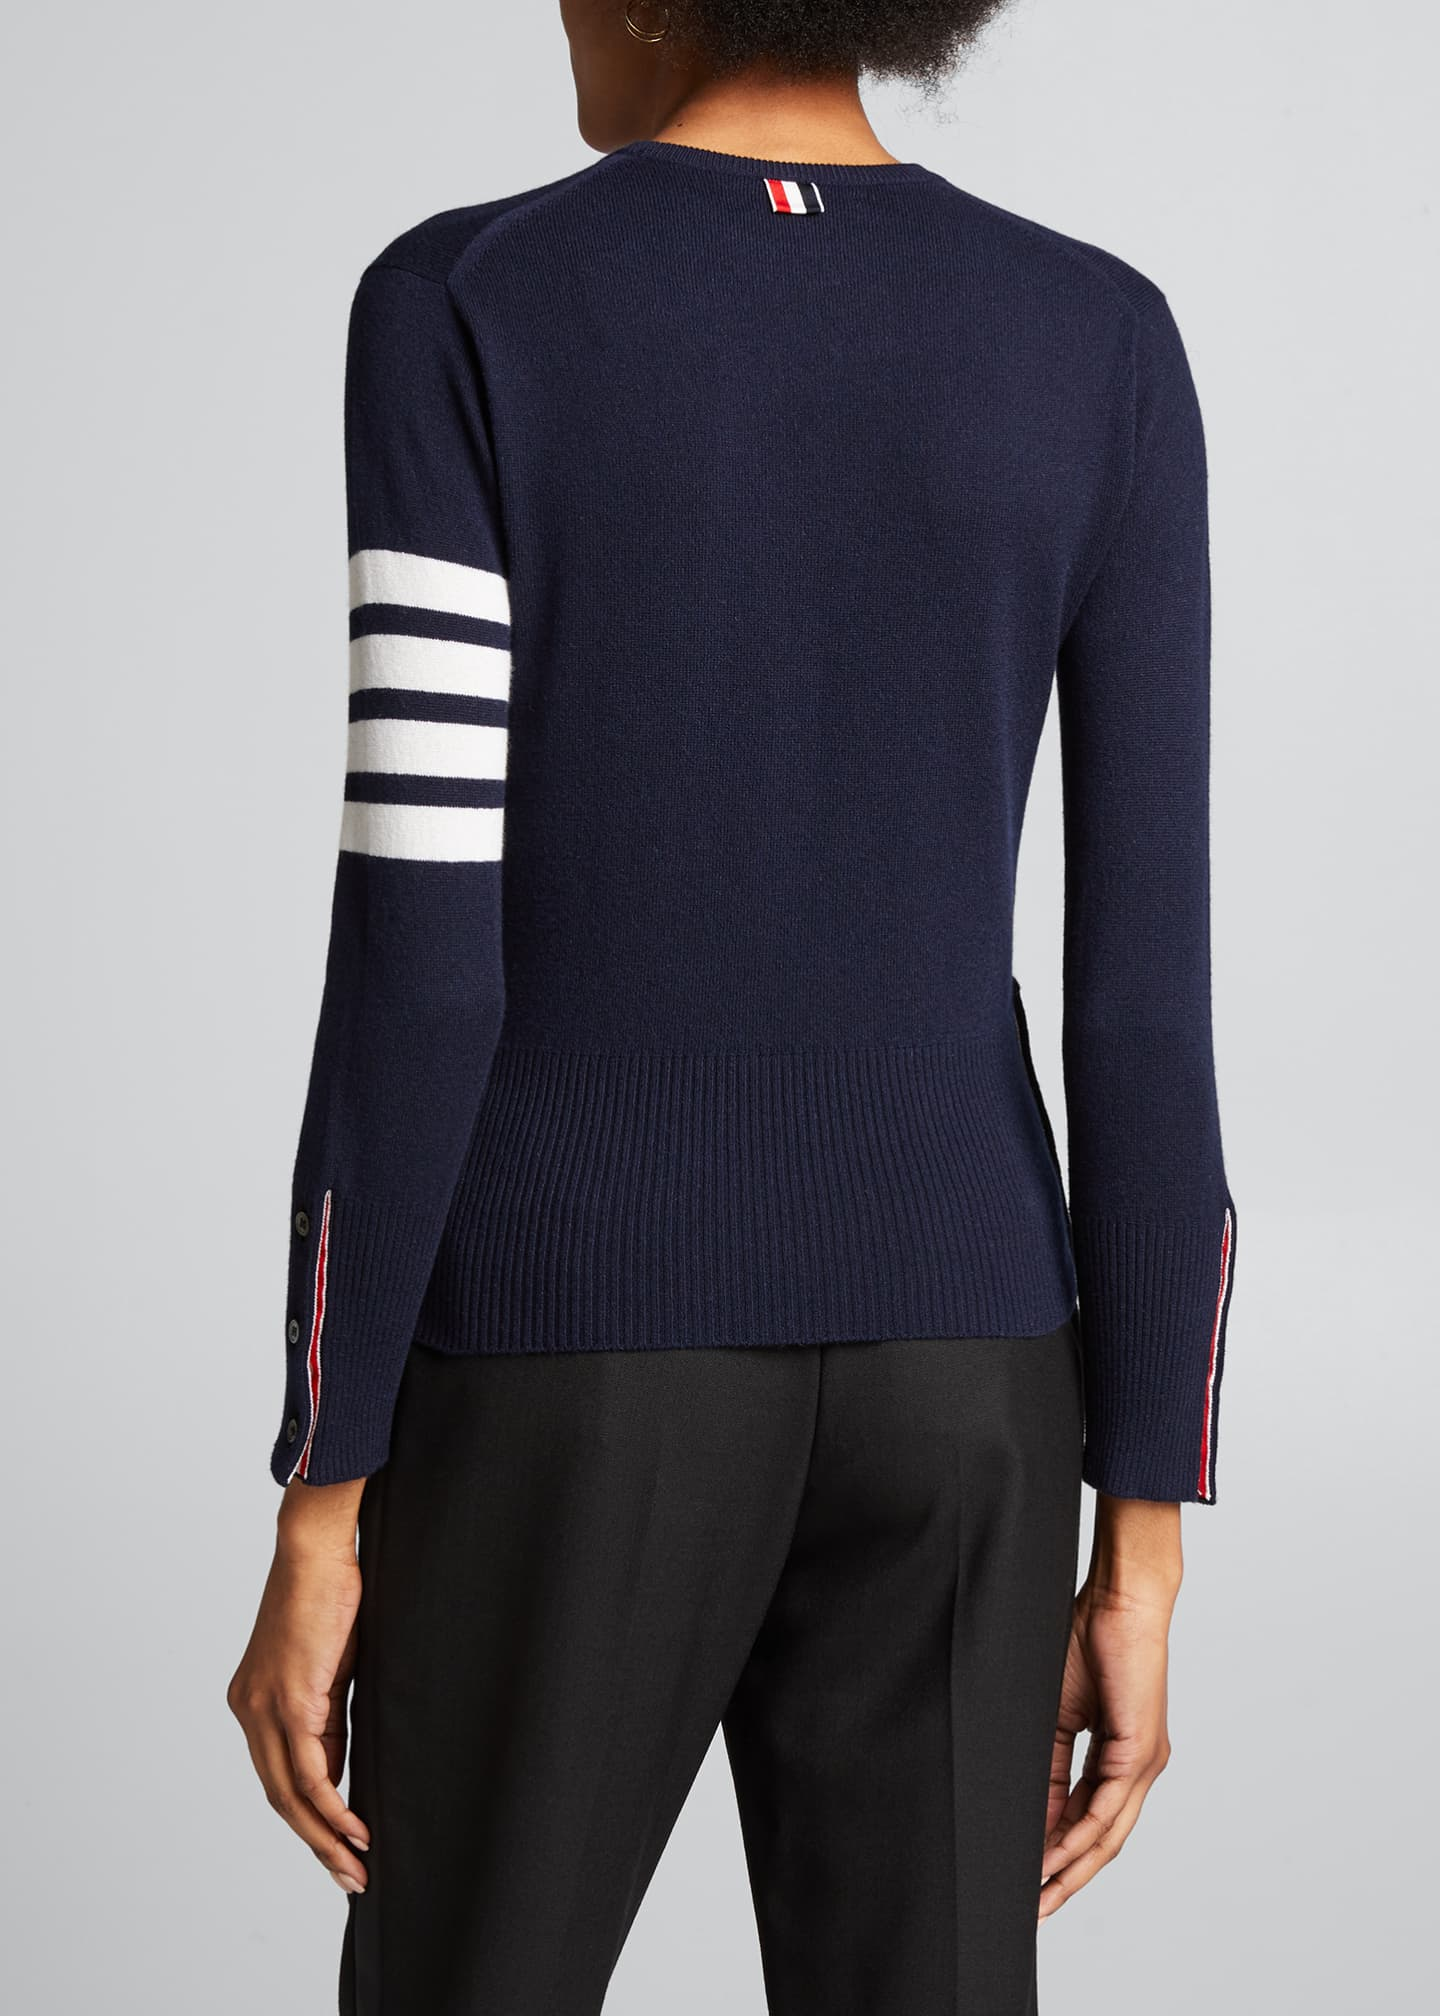 Image 2 of 5: Classic Cashmere Pullover with 4-Bar Stripes